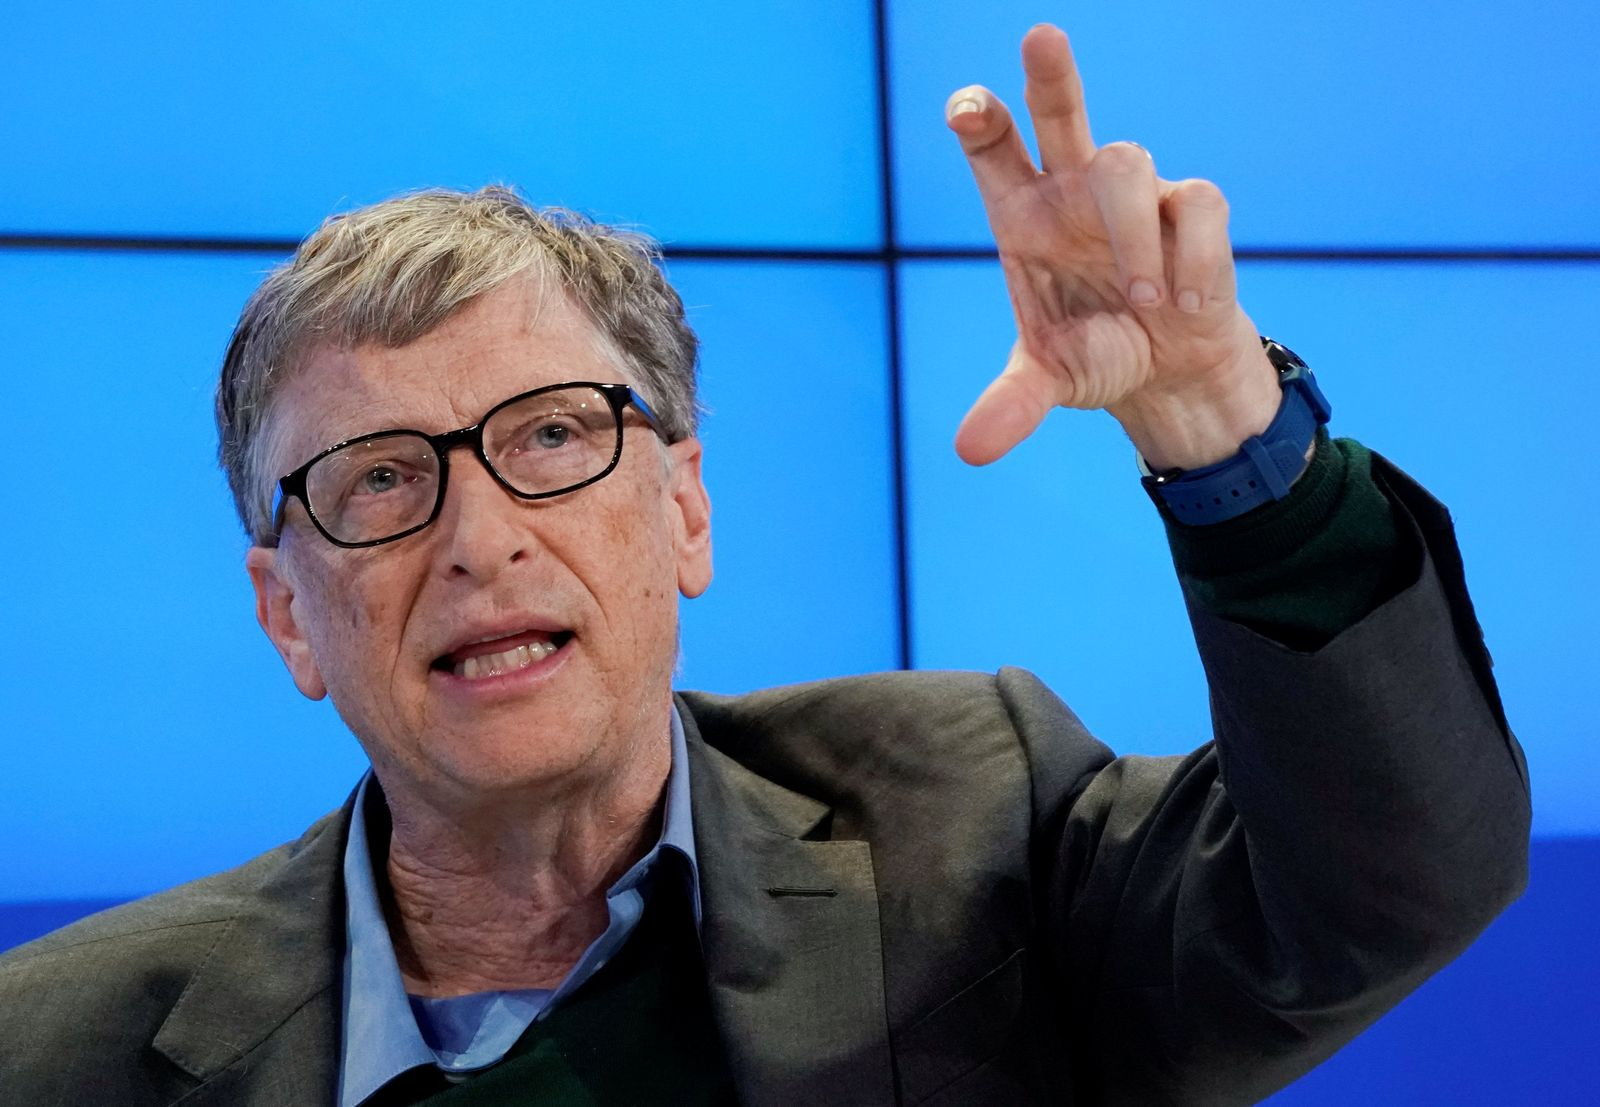 Bill Gates, Co-Chair of Bill & Melinda Gates Foundation, attends the World Economic Forum (WEF) annual meeting in Davos